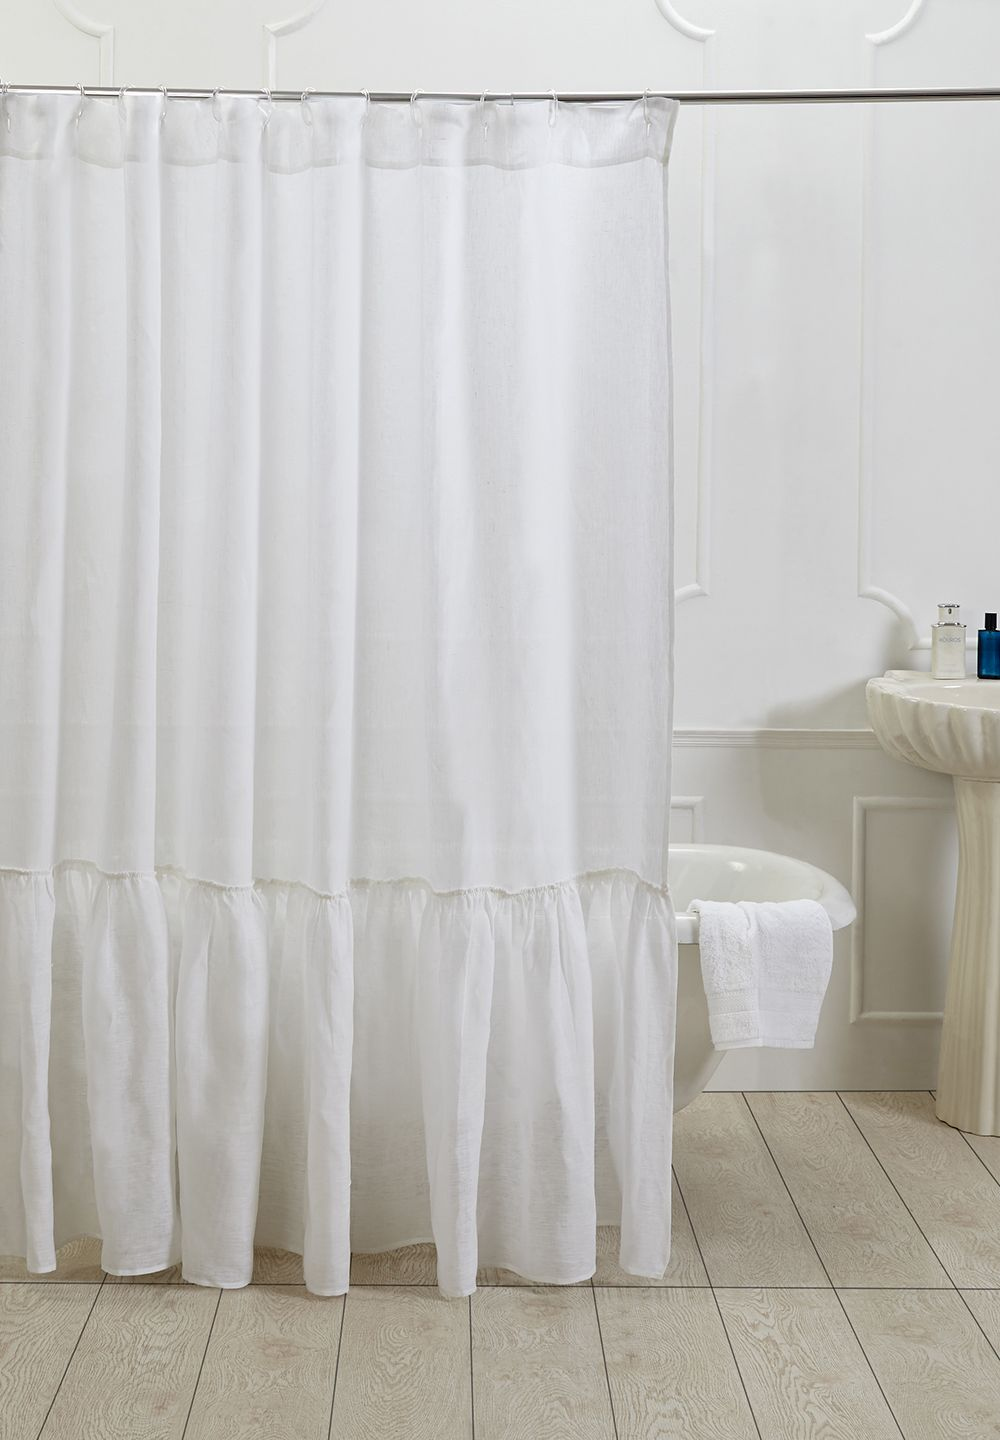 Making Your Bathroom Look Larger With Shower Curtain Ideas | Curtain ...